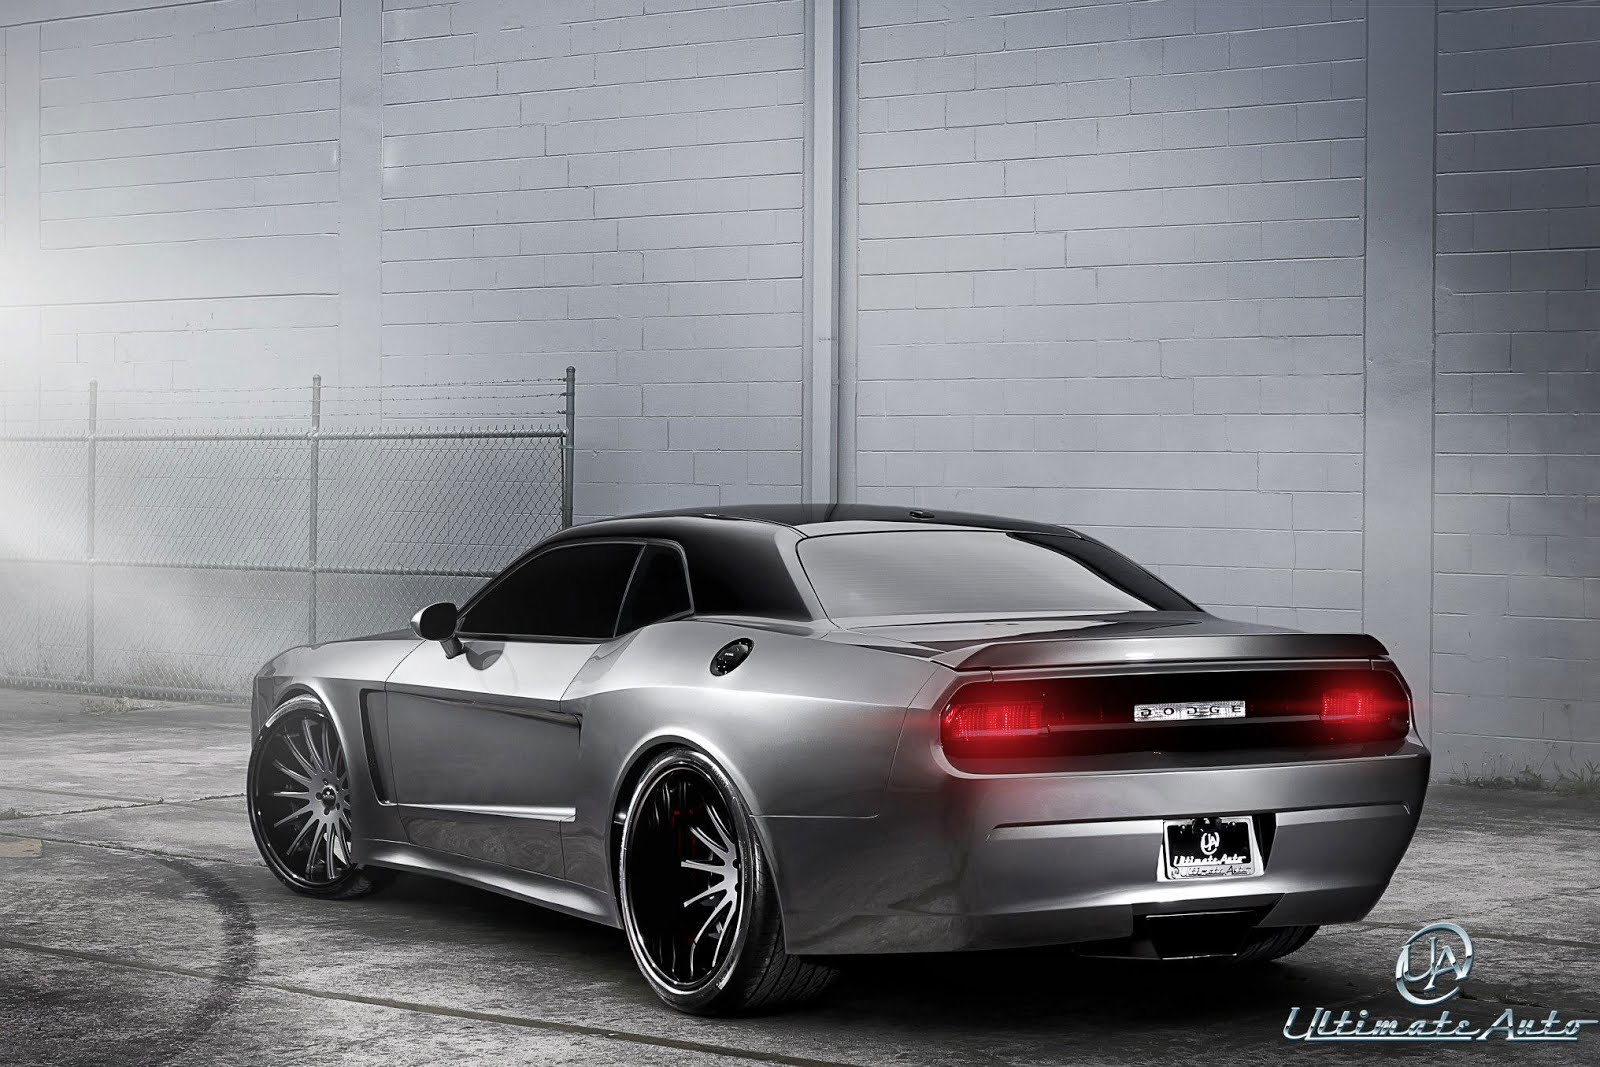 Widebody Dodge Challenger Srt 8 By Ultimate Auto Ebeasts Com